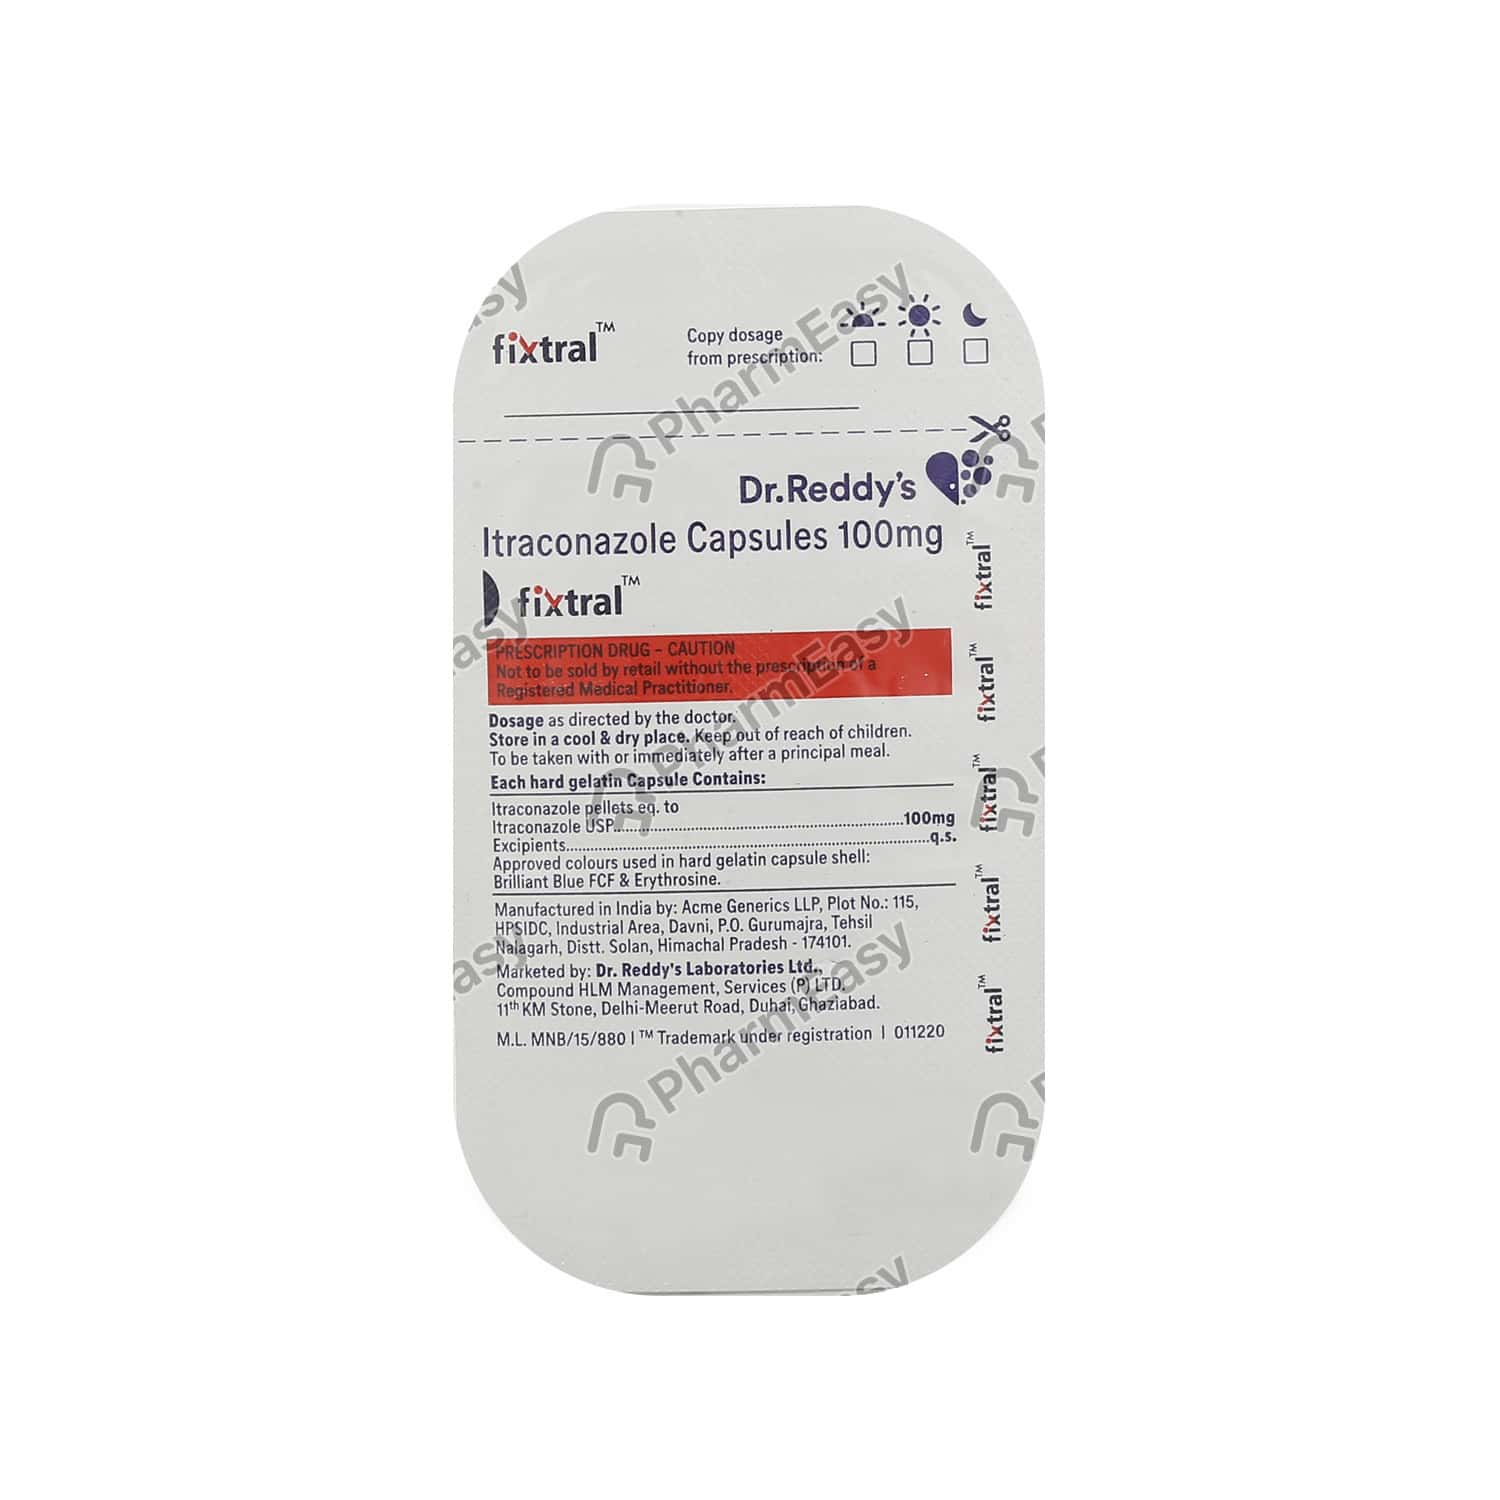 Fixtral 100mg Strip Of 7 Capsules